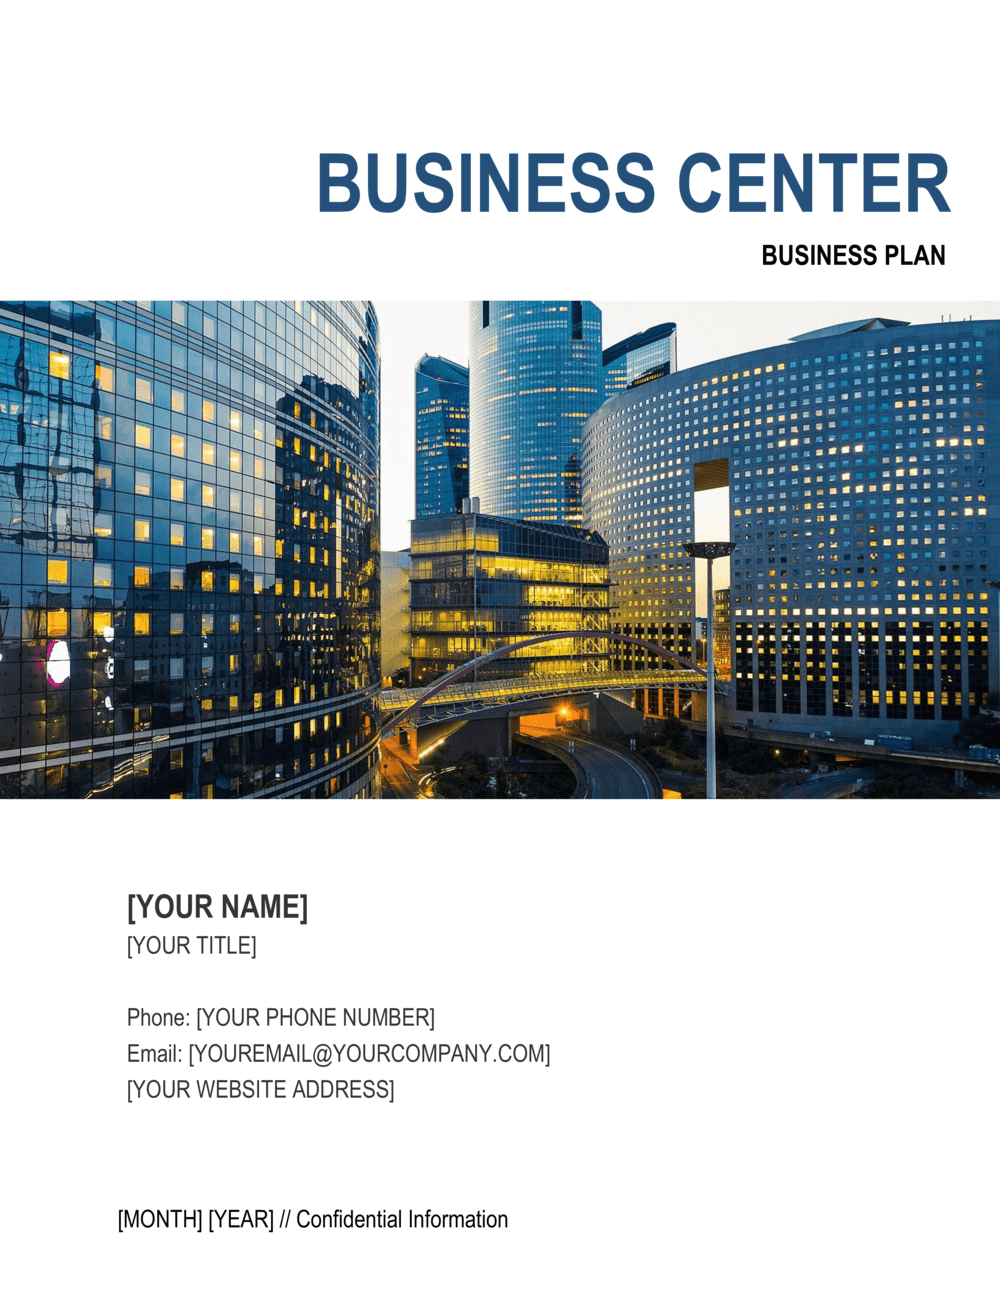 Business-in-a-Box's Business Center Business Plan Template